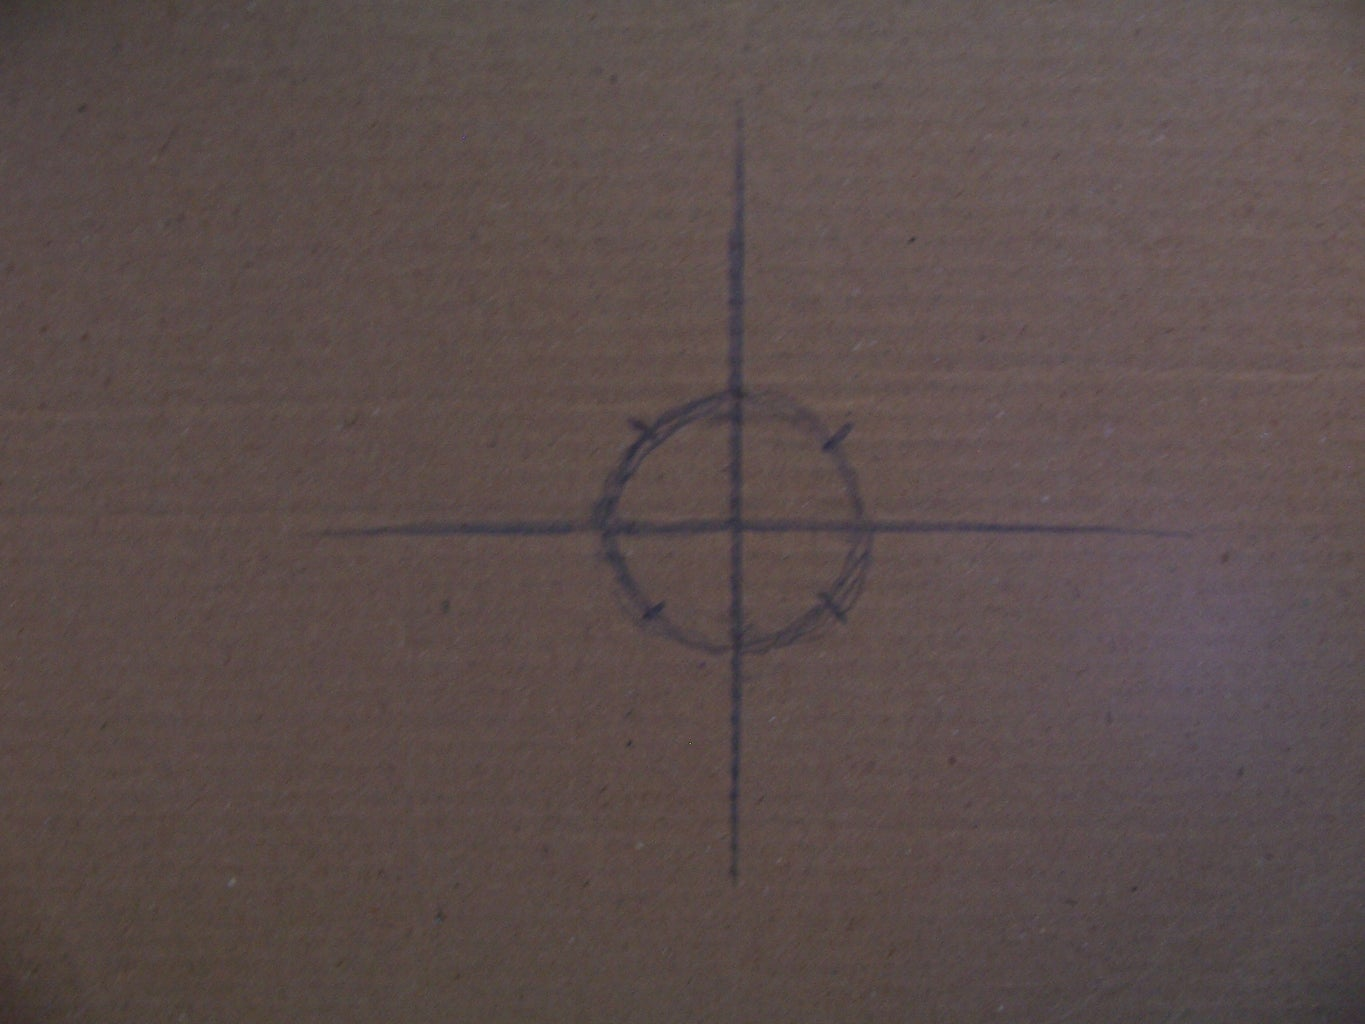 Drawing Out the Shuriken